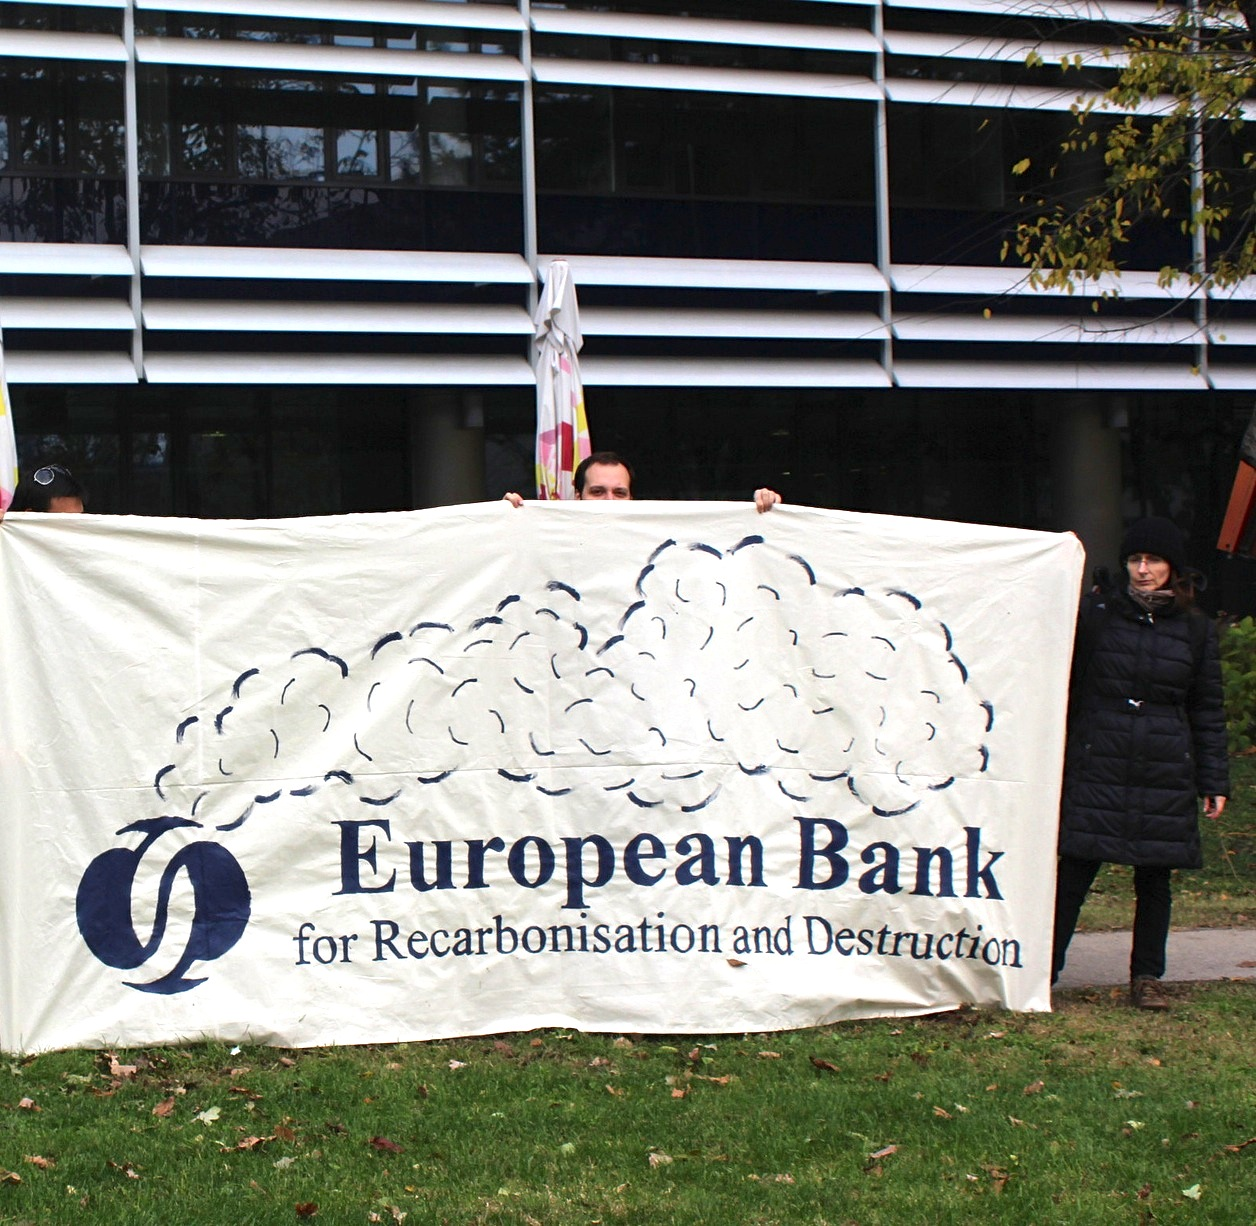 Bank-for-Recarbonisation-and-Destruction--cropped